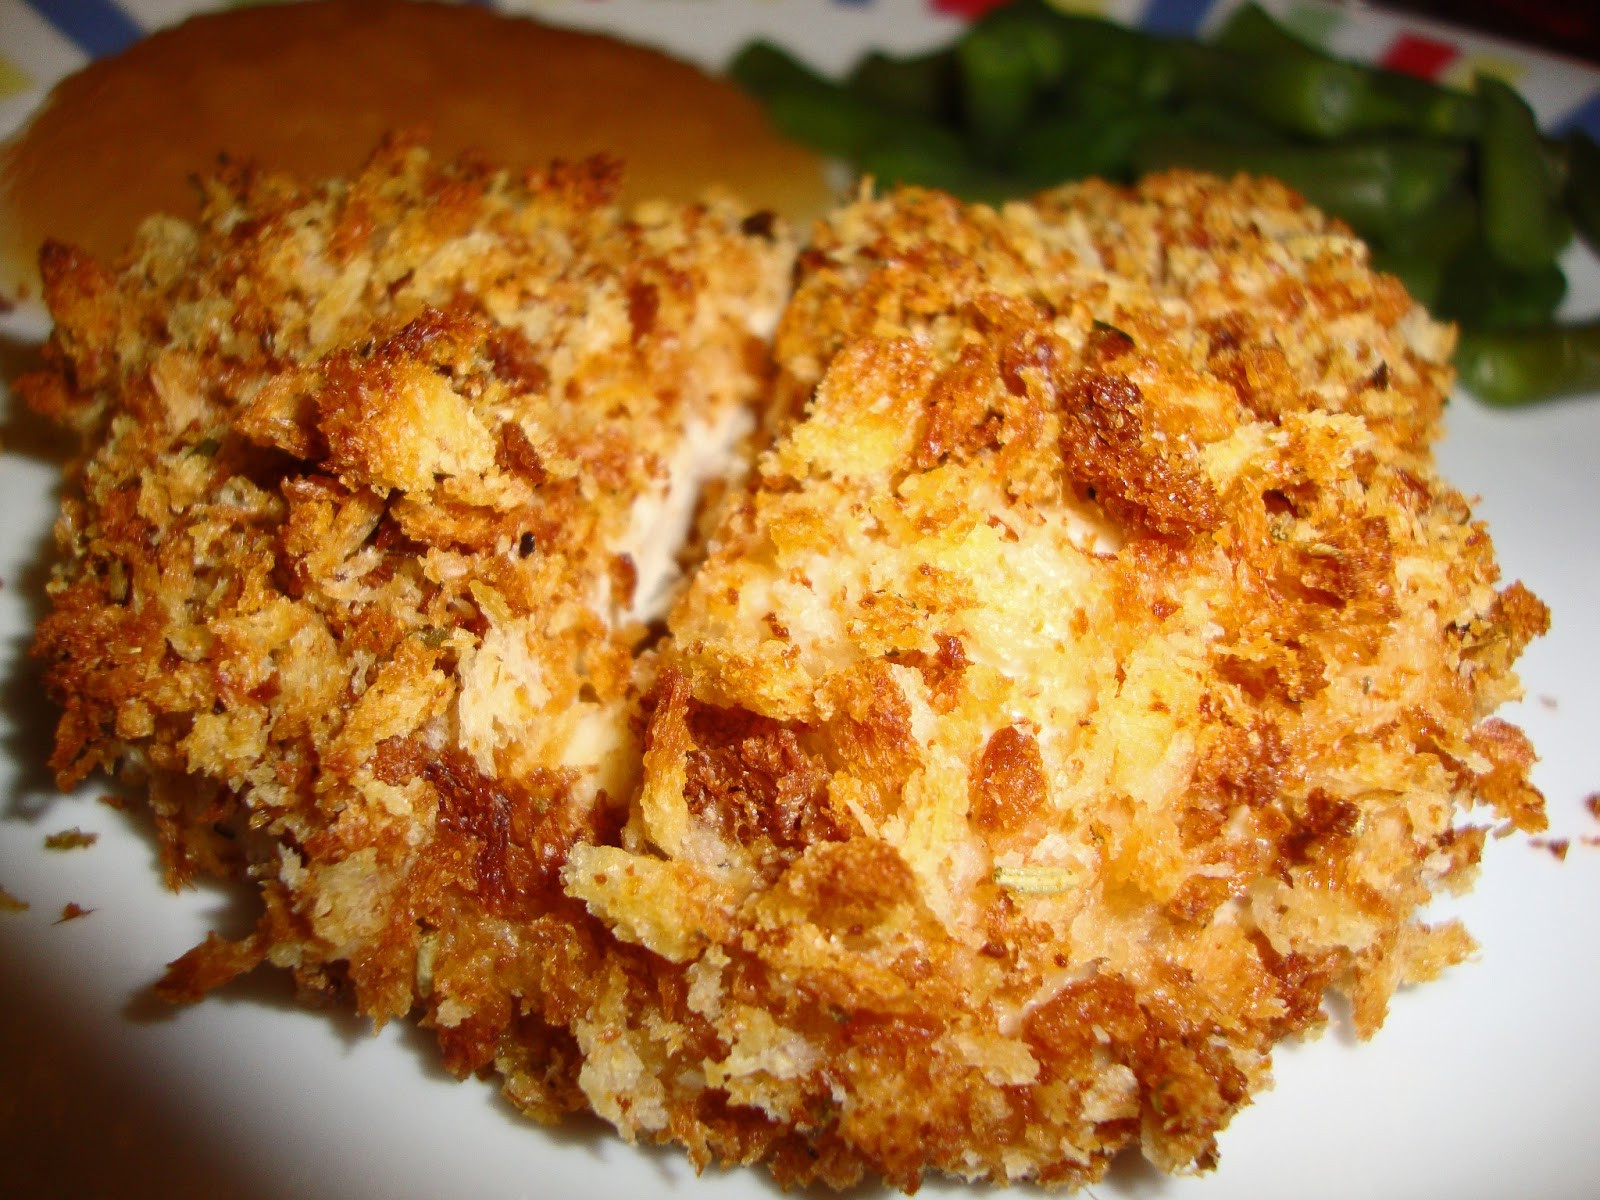 Breaded Baked Chicken  Dining with Dinosaurs Baked Breaded Chicken